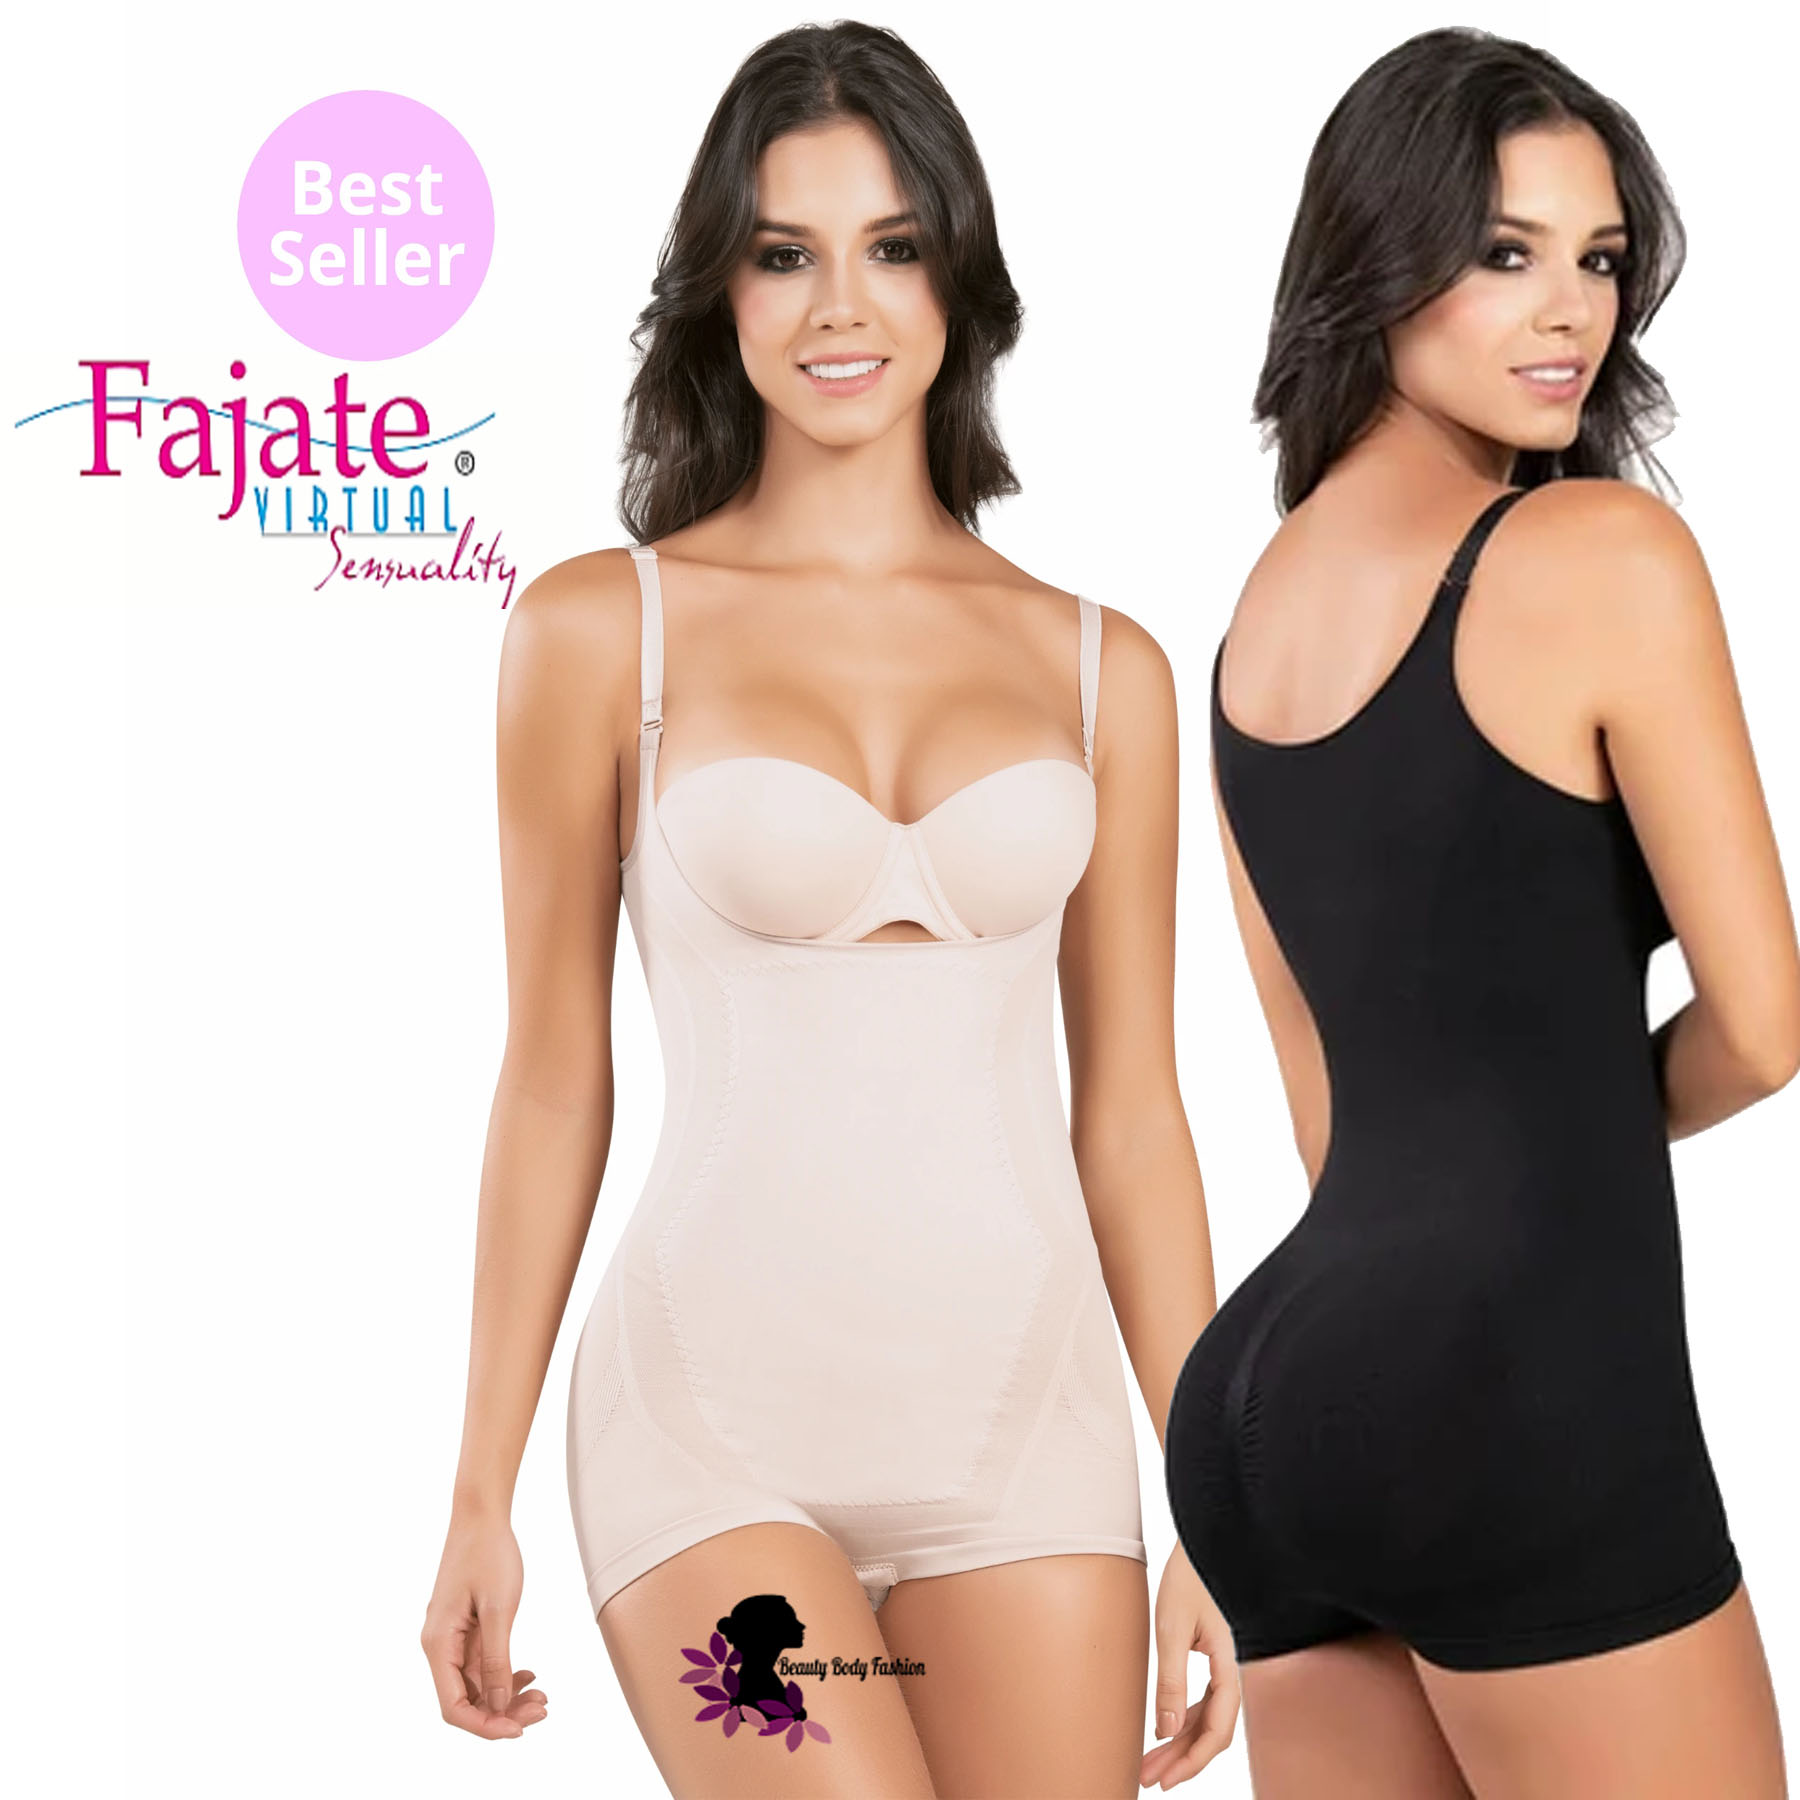 Fajas Colombianas Fajate/&Shaping Short Invisible Under Jeans Butt Lifter Fajate